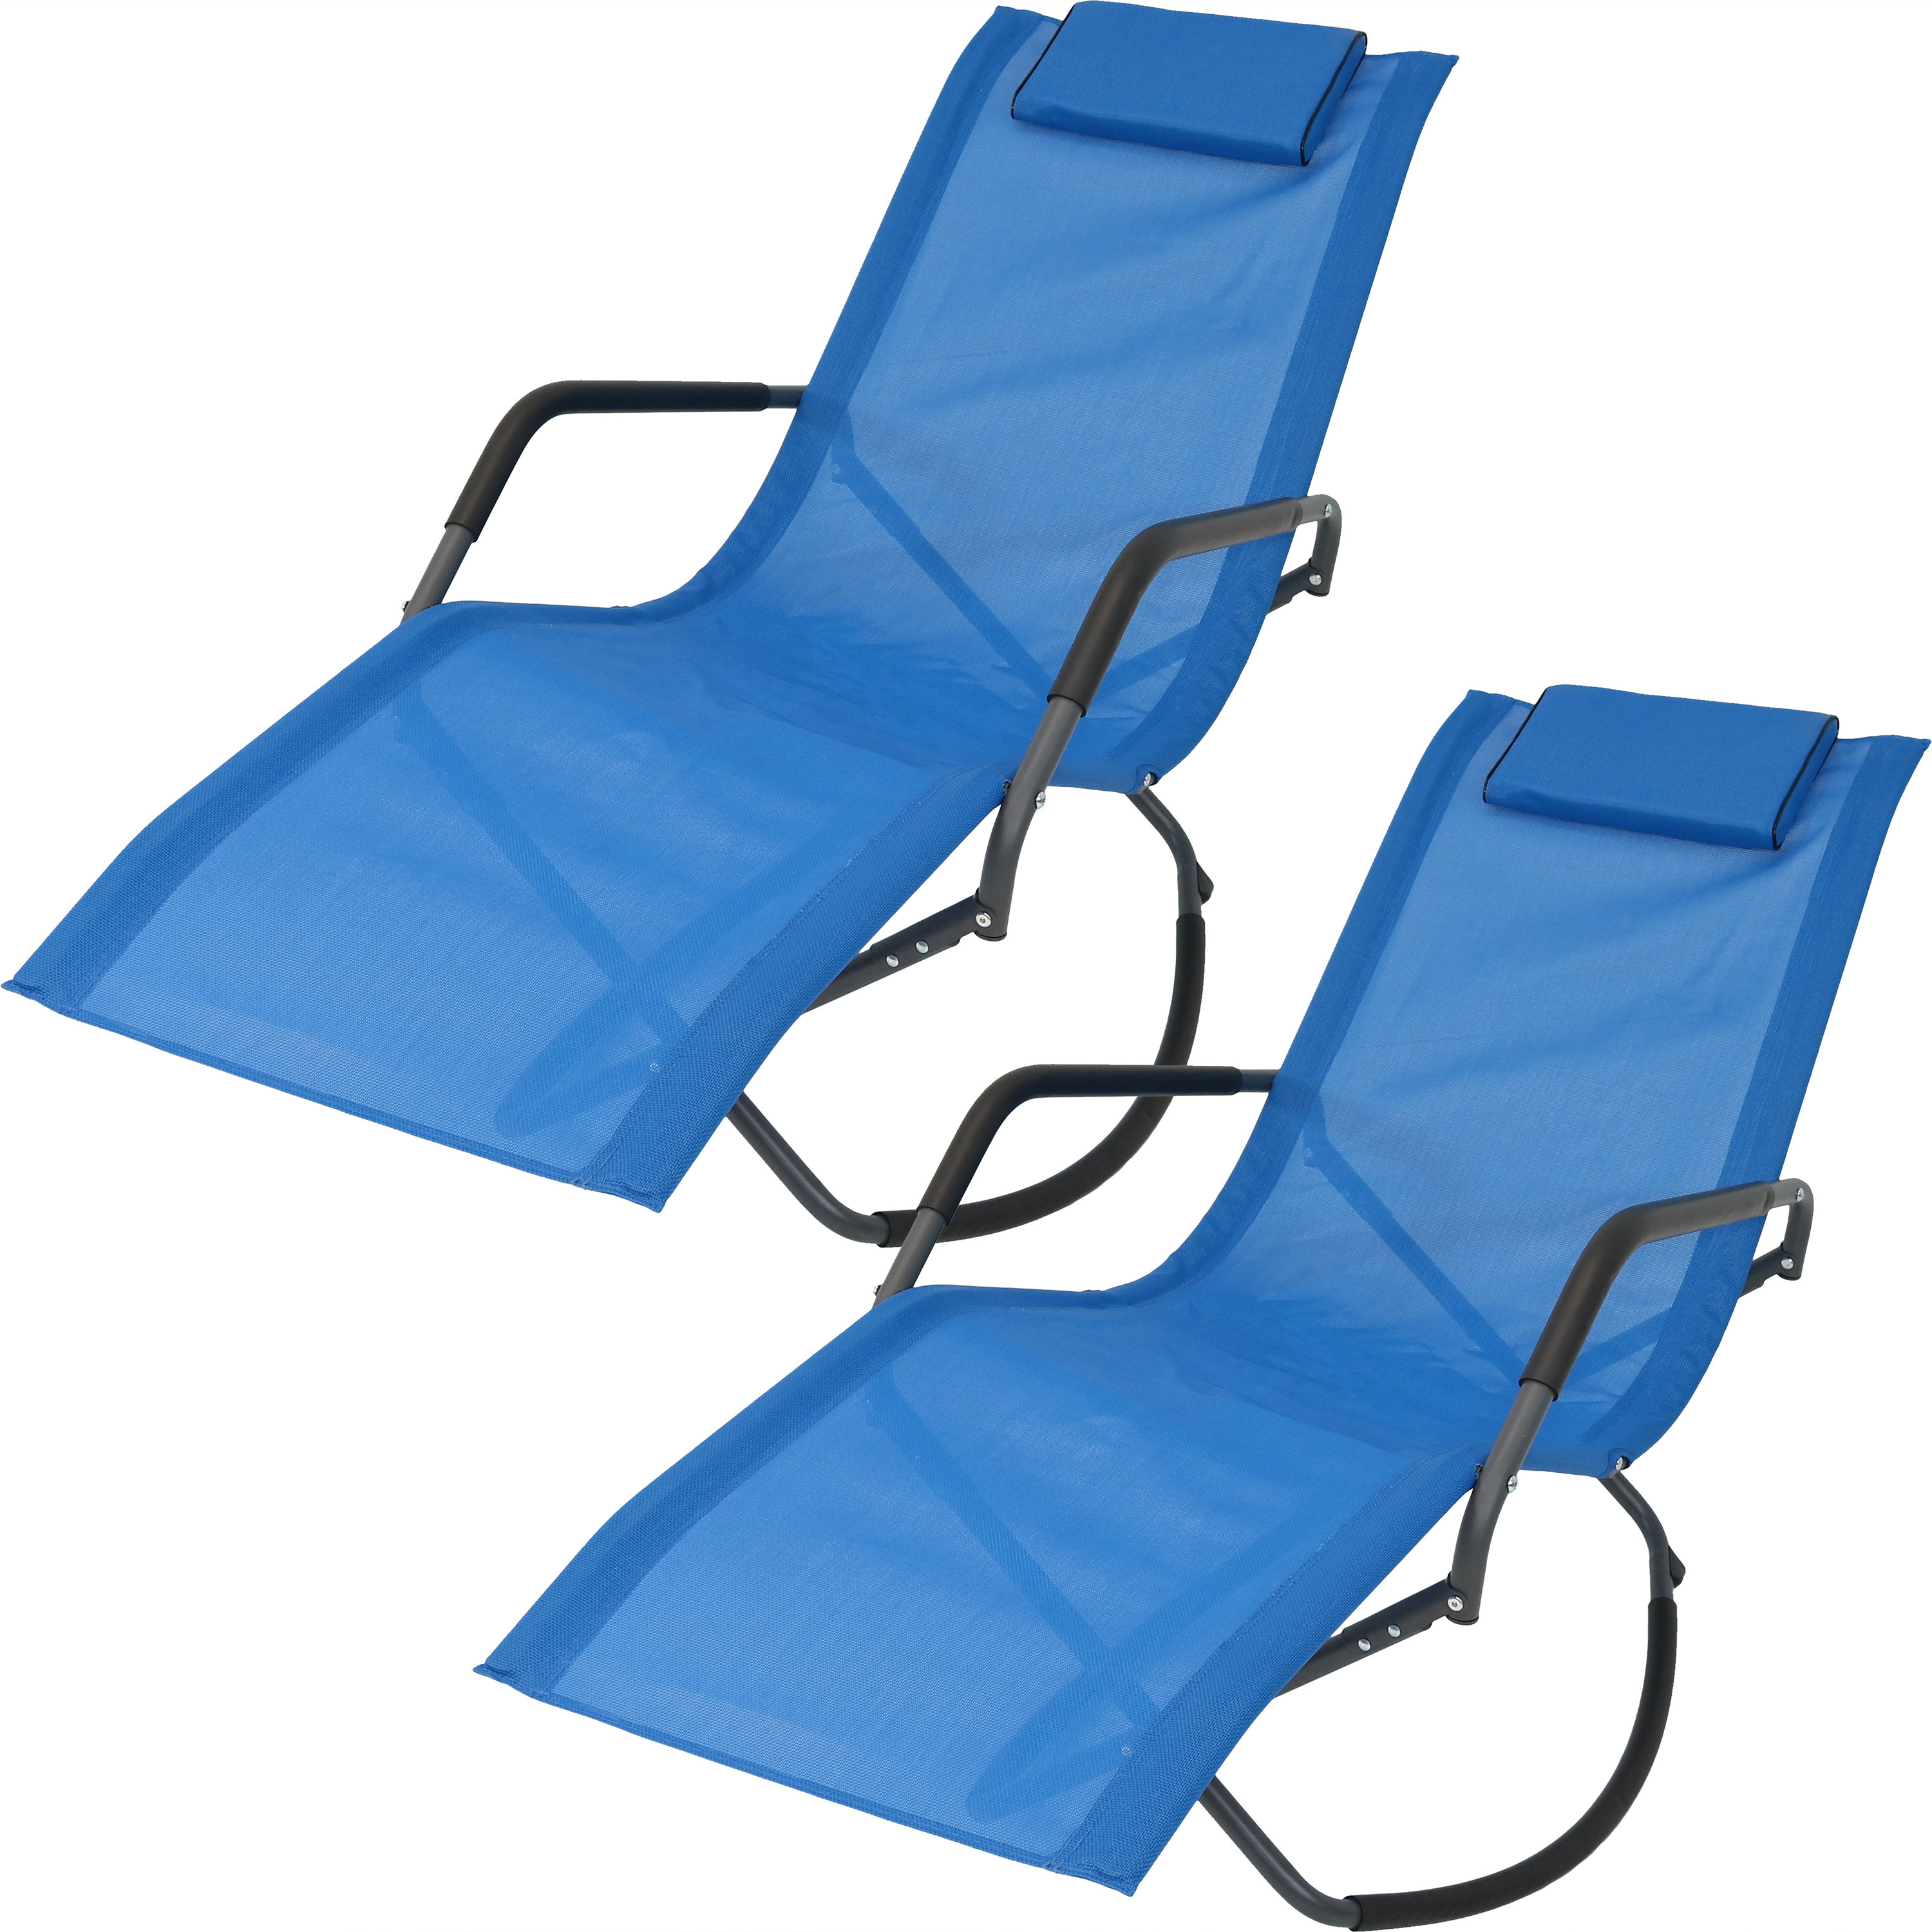 Rocking Chaise Lounge Chair Headrest Pillow Folding Patio Lounger Blue Photo